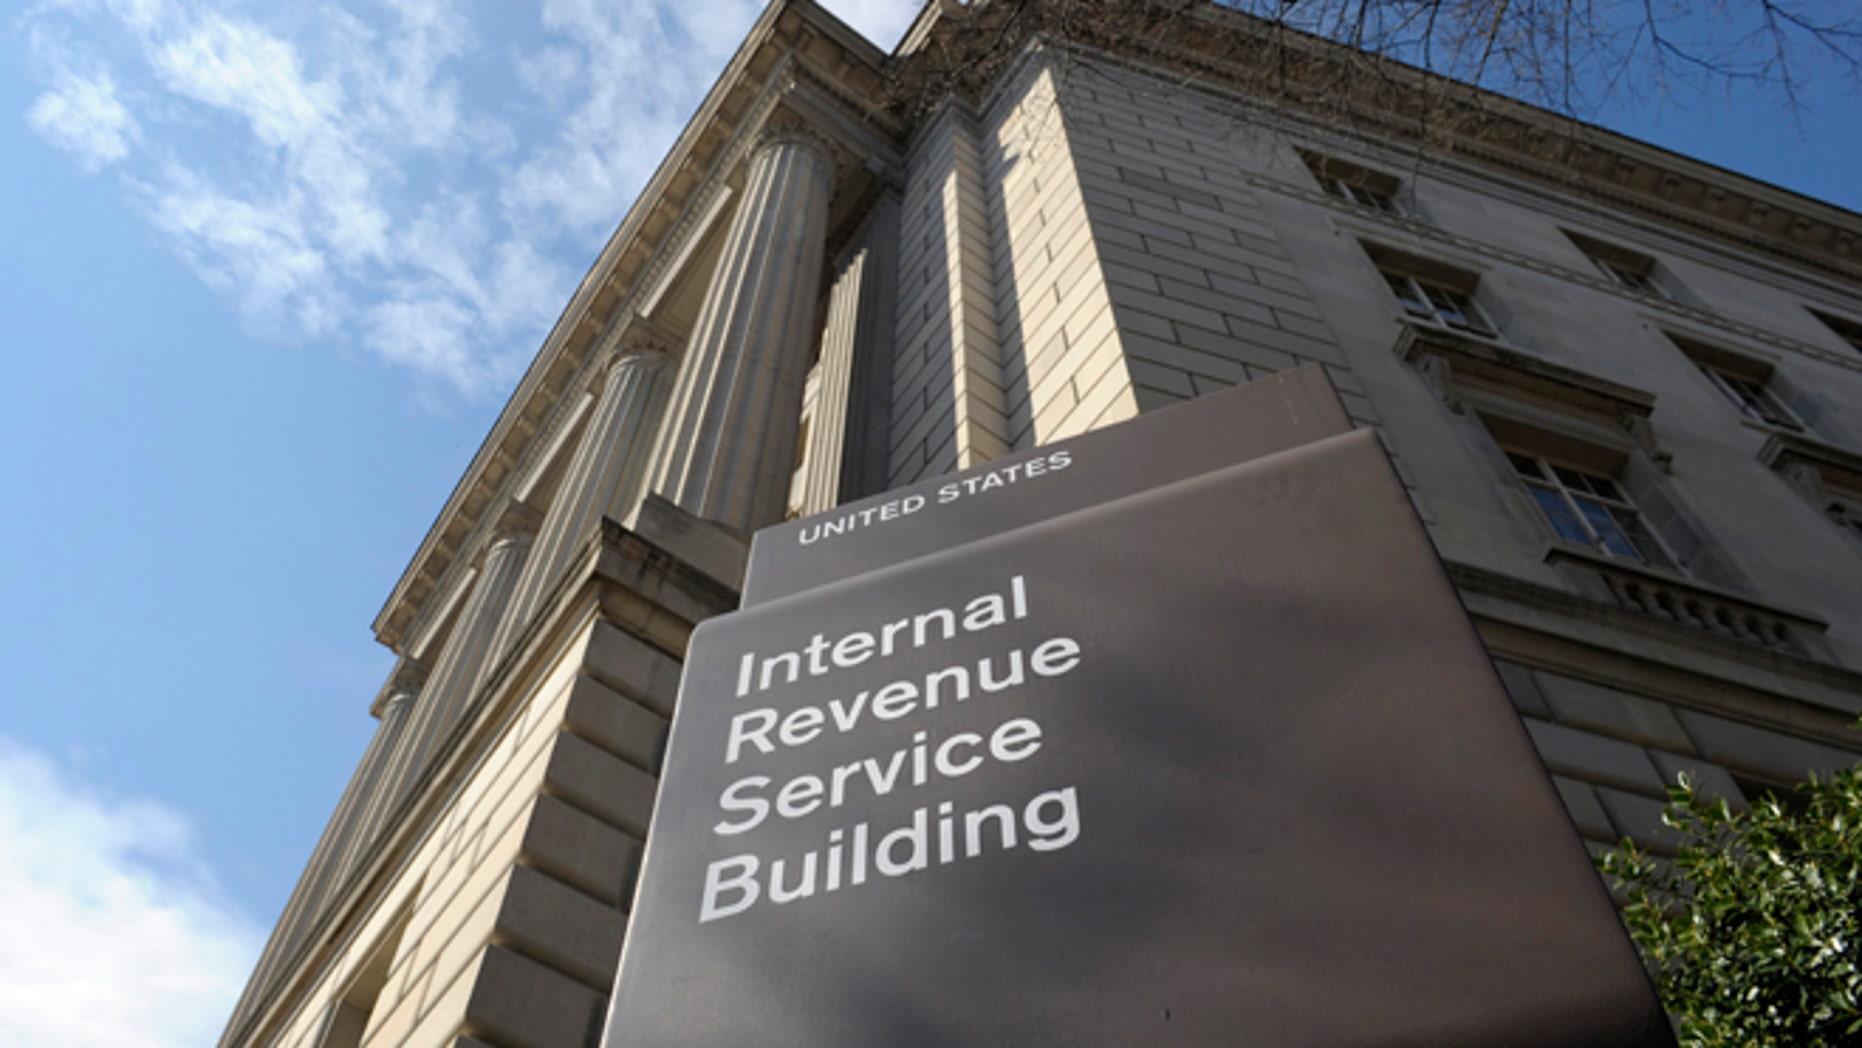 March 22, 2013: Shows the exterior of the Internal Revenue Service building in Washington.